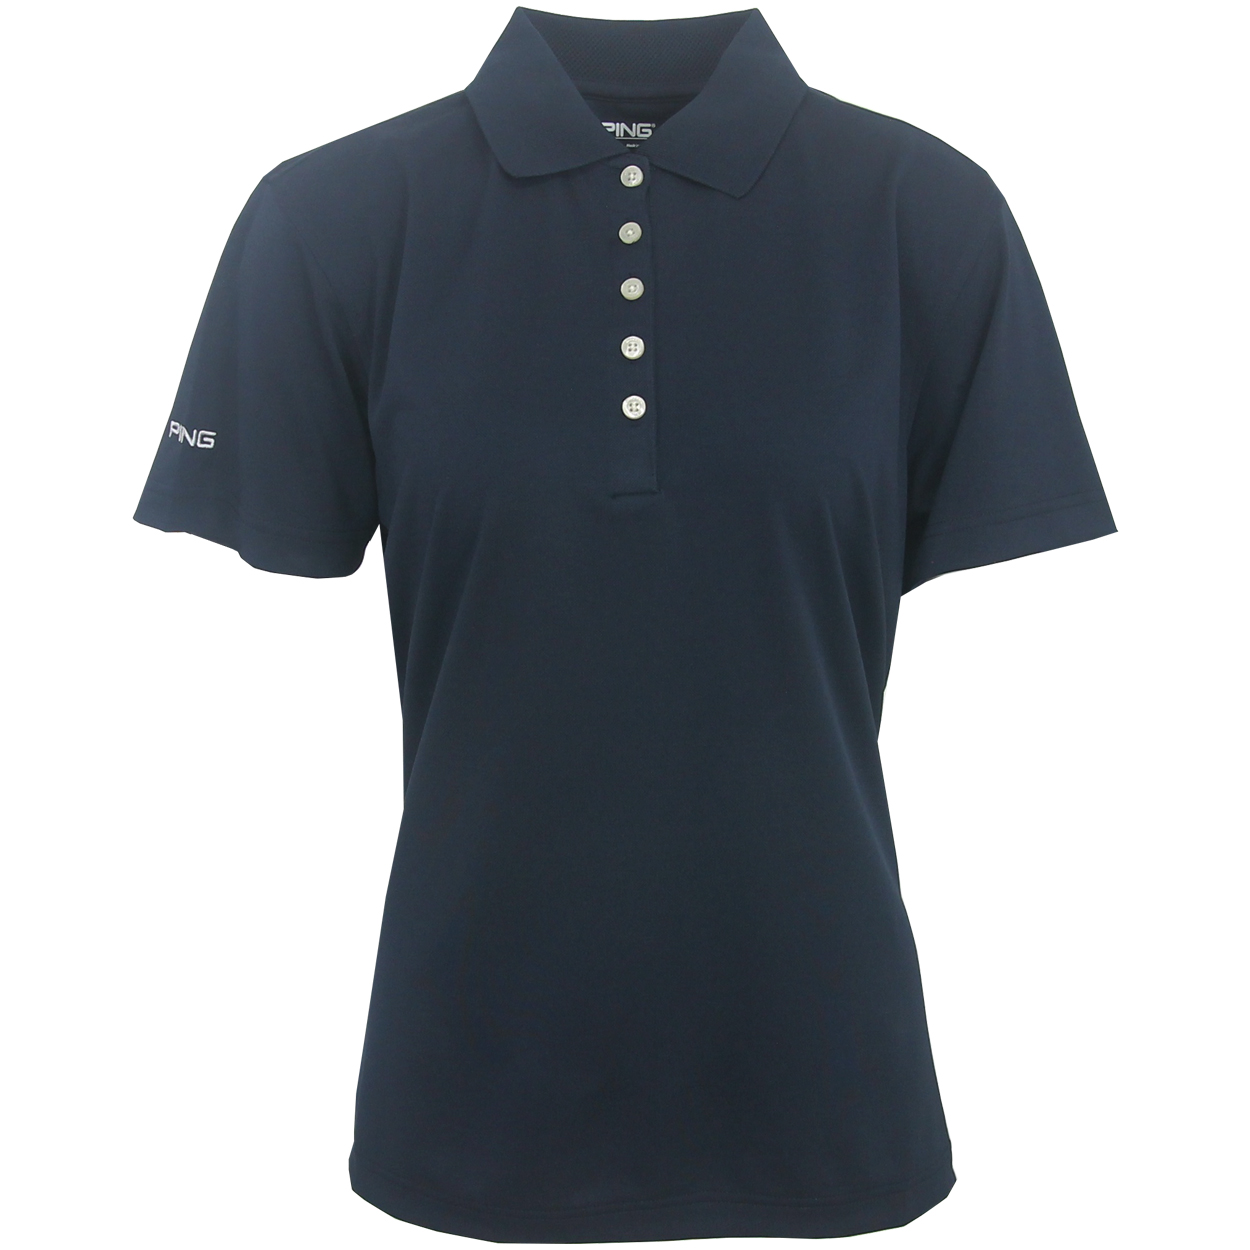 Design custom made dry performance polos online. Free shipping, bulk discounts and no minimums or setups for custom made dry performance shirts. Free design templates. Over 10 million customer designs since